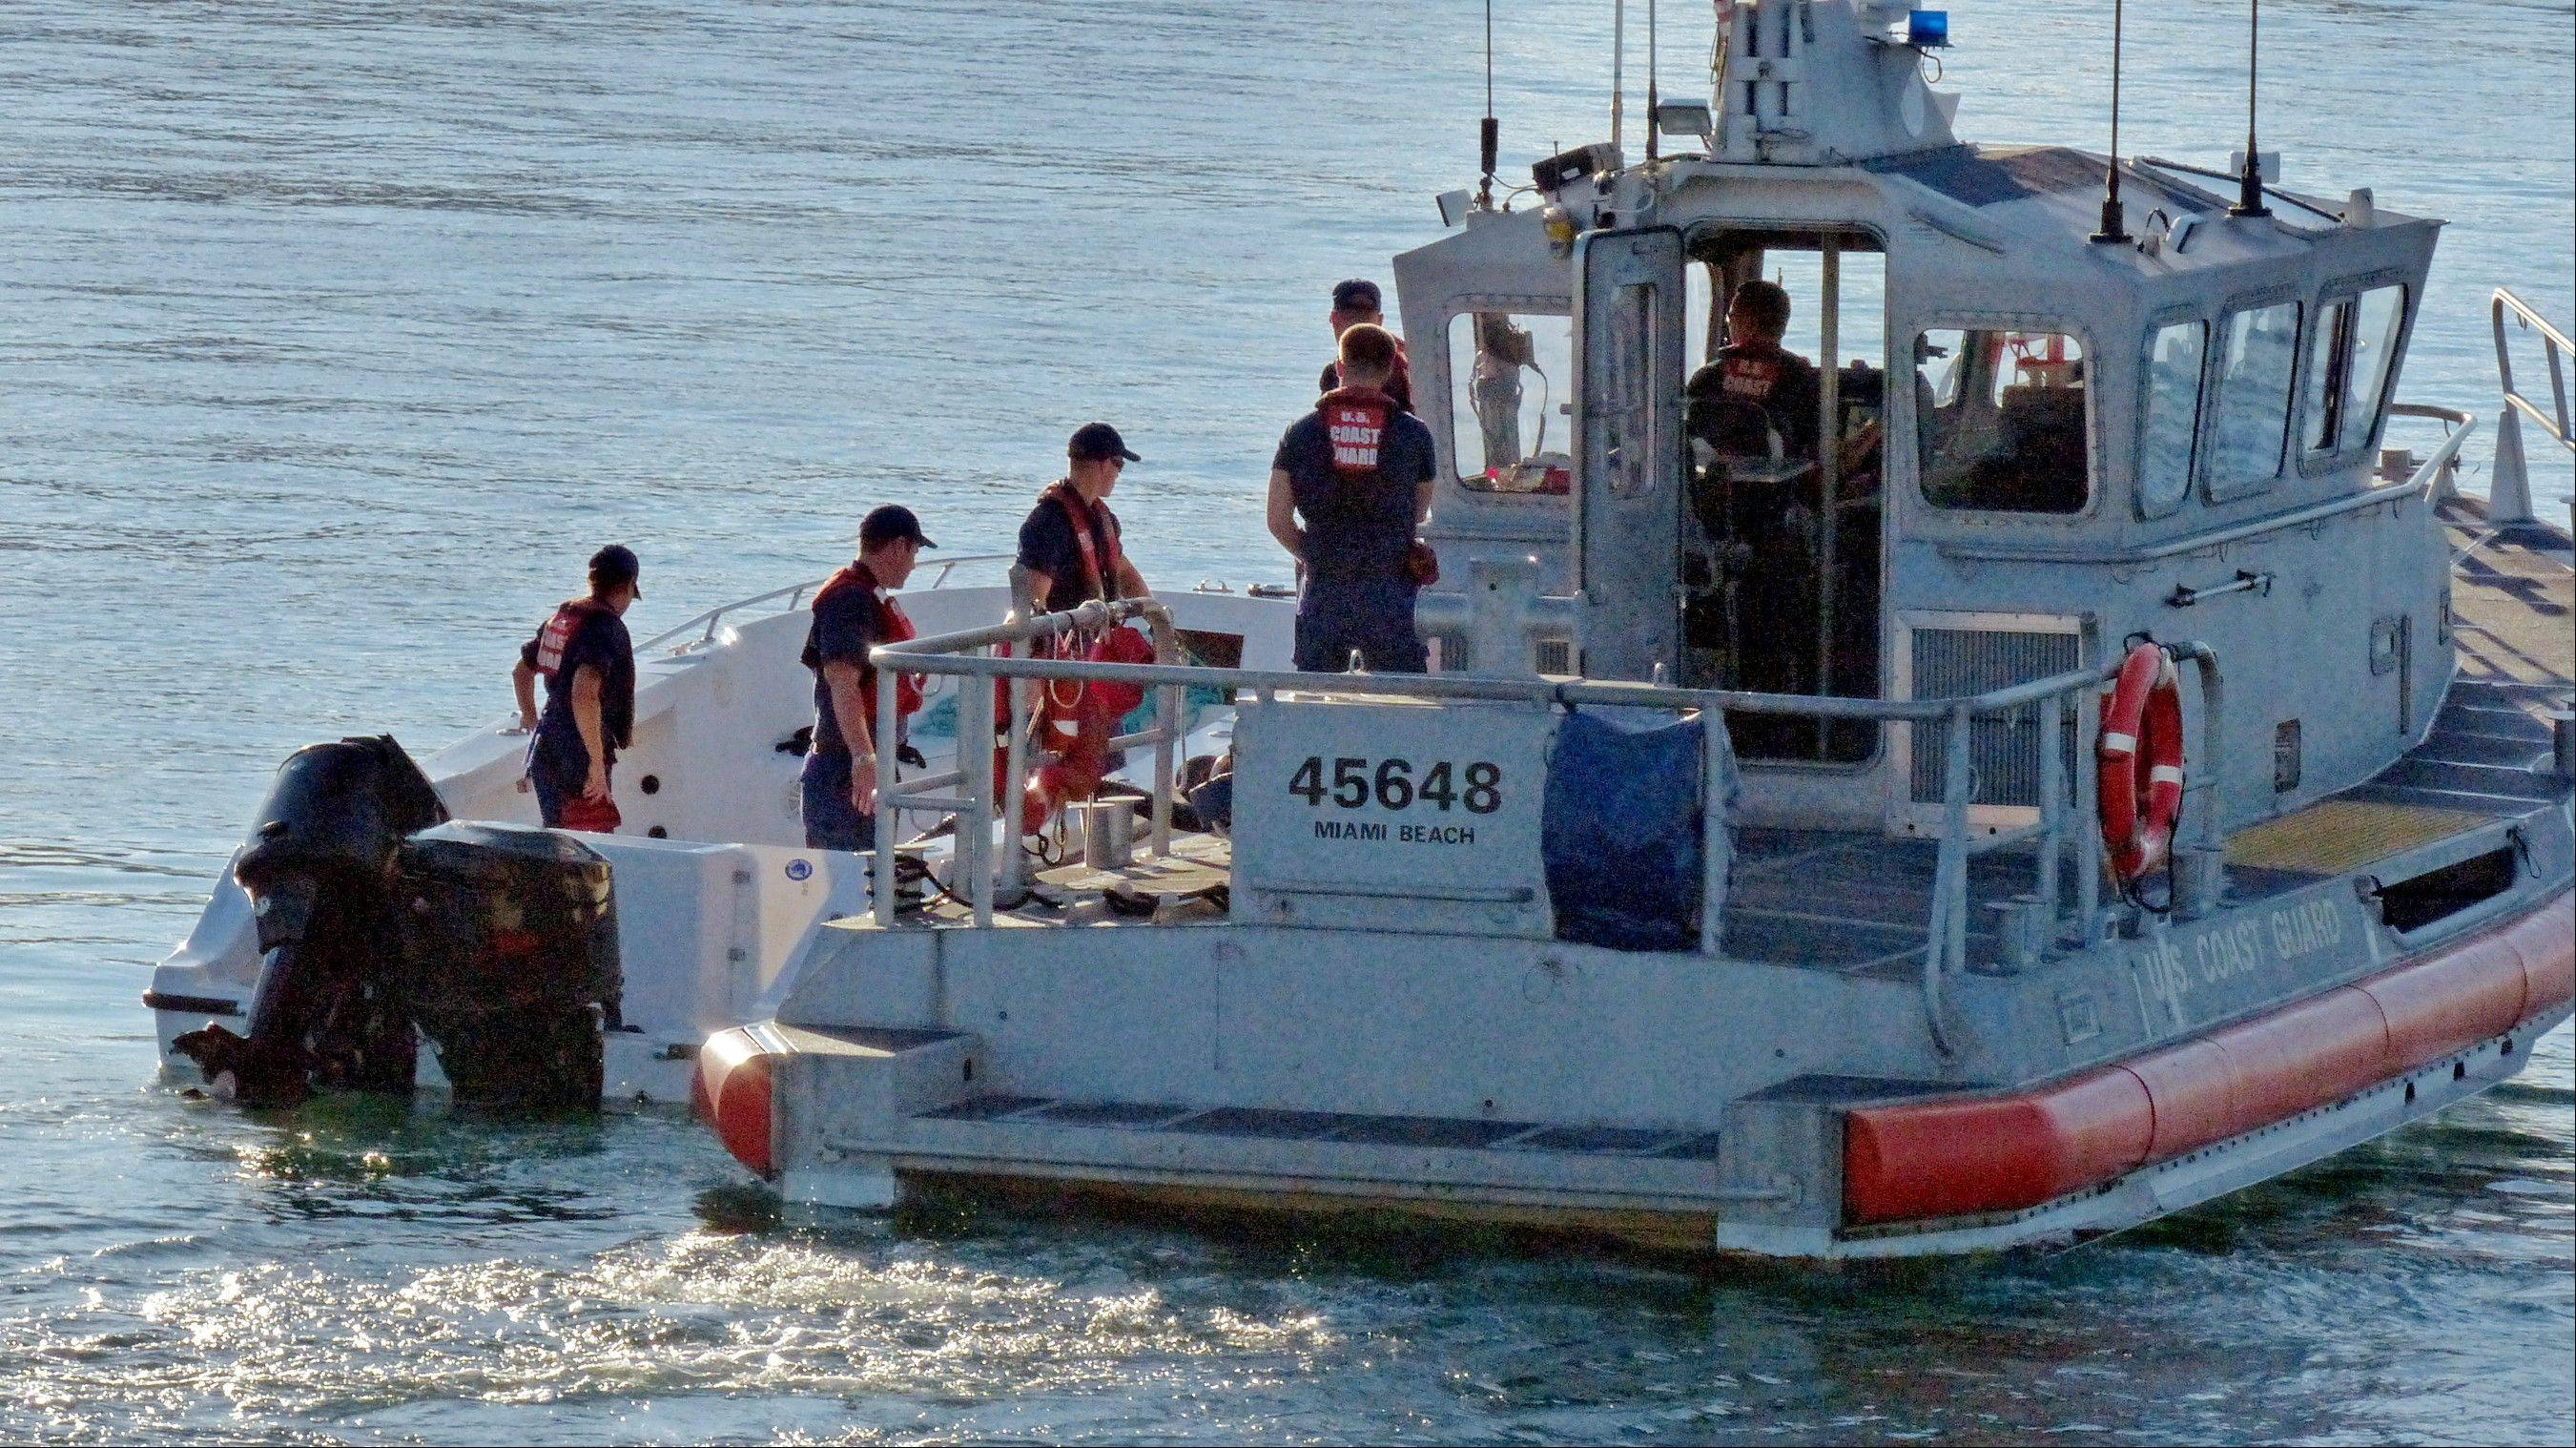 U.S. Coast Guard personnel investigate a vessel with a missing center console that capsized near Miami, Wednesday, Oct. 16, 2013. Four women died and 10 other people were taken into custody after the boat with more than a dozen people aboard, including Haitian and Jamaican nationals, capsized.